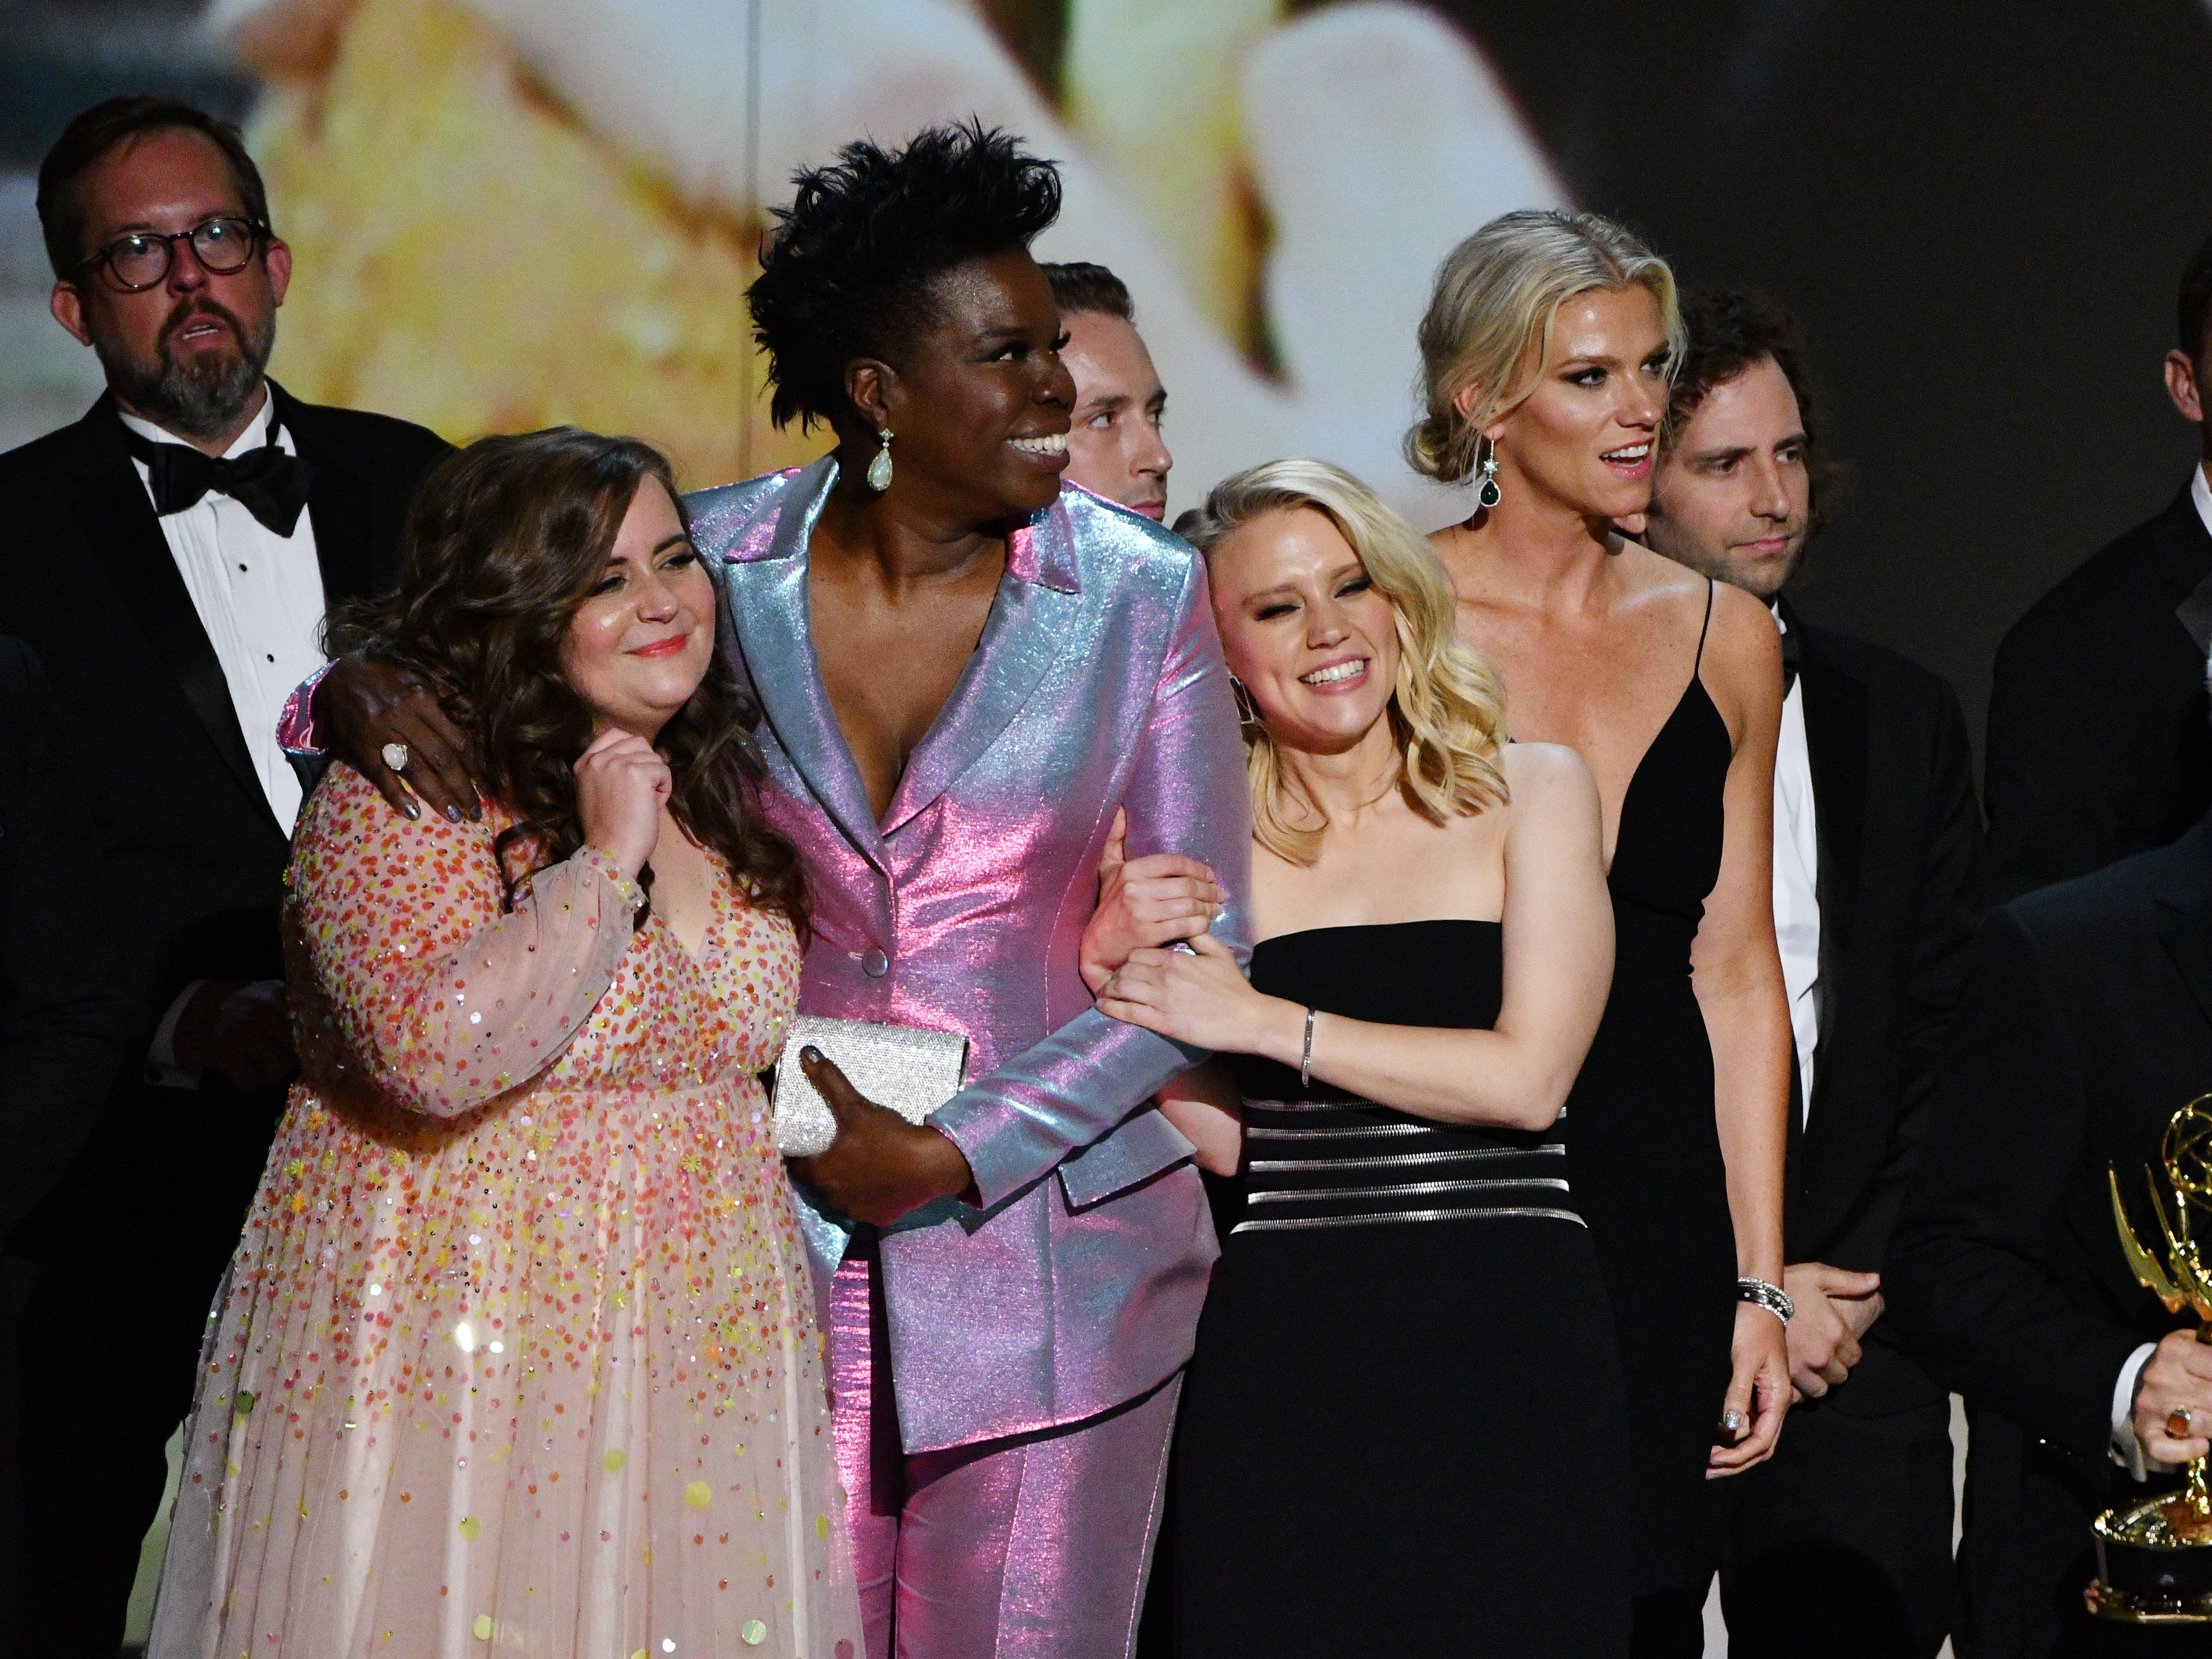 """Aidy Bryant, Leslie Jones and Kate McKinnon join the cast and crew of """"Saturday Night Live"""" on NBC to accept the award for outstanding variety sketch series."""